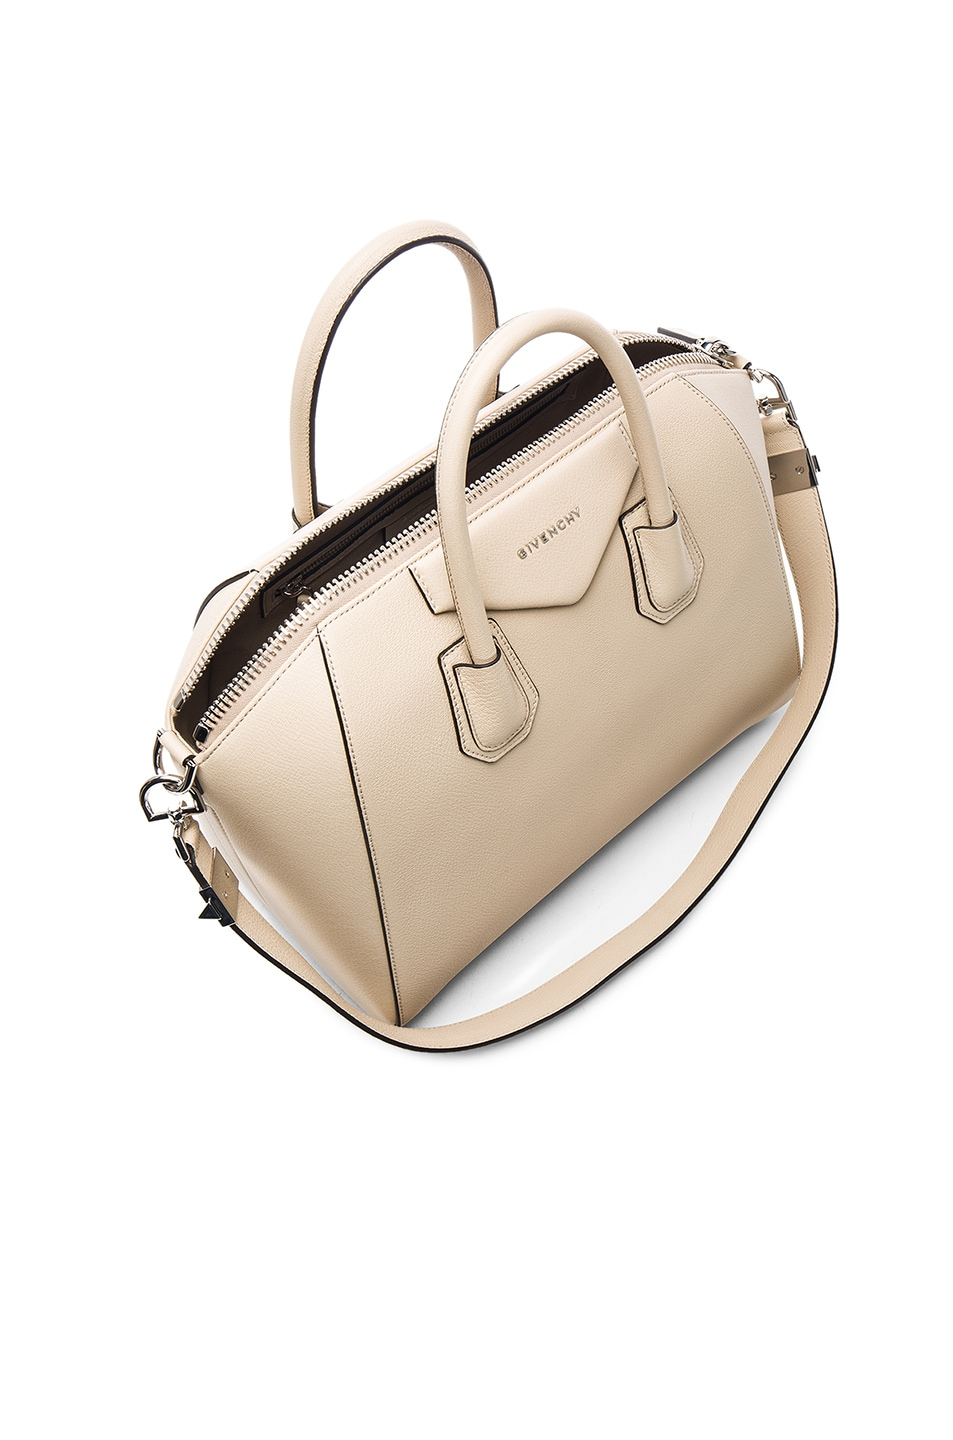 Image 5 of Givenchy Medium Antigona in Beige Buff